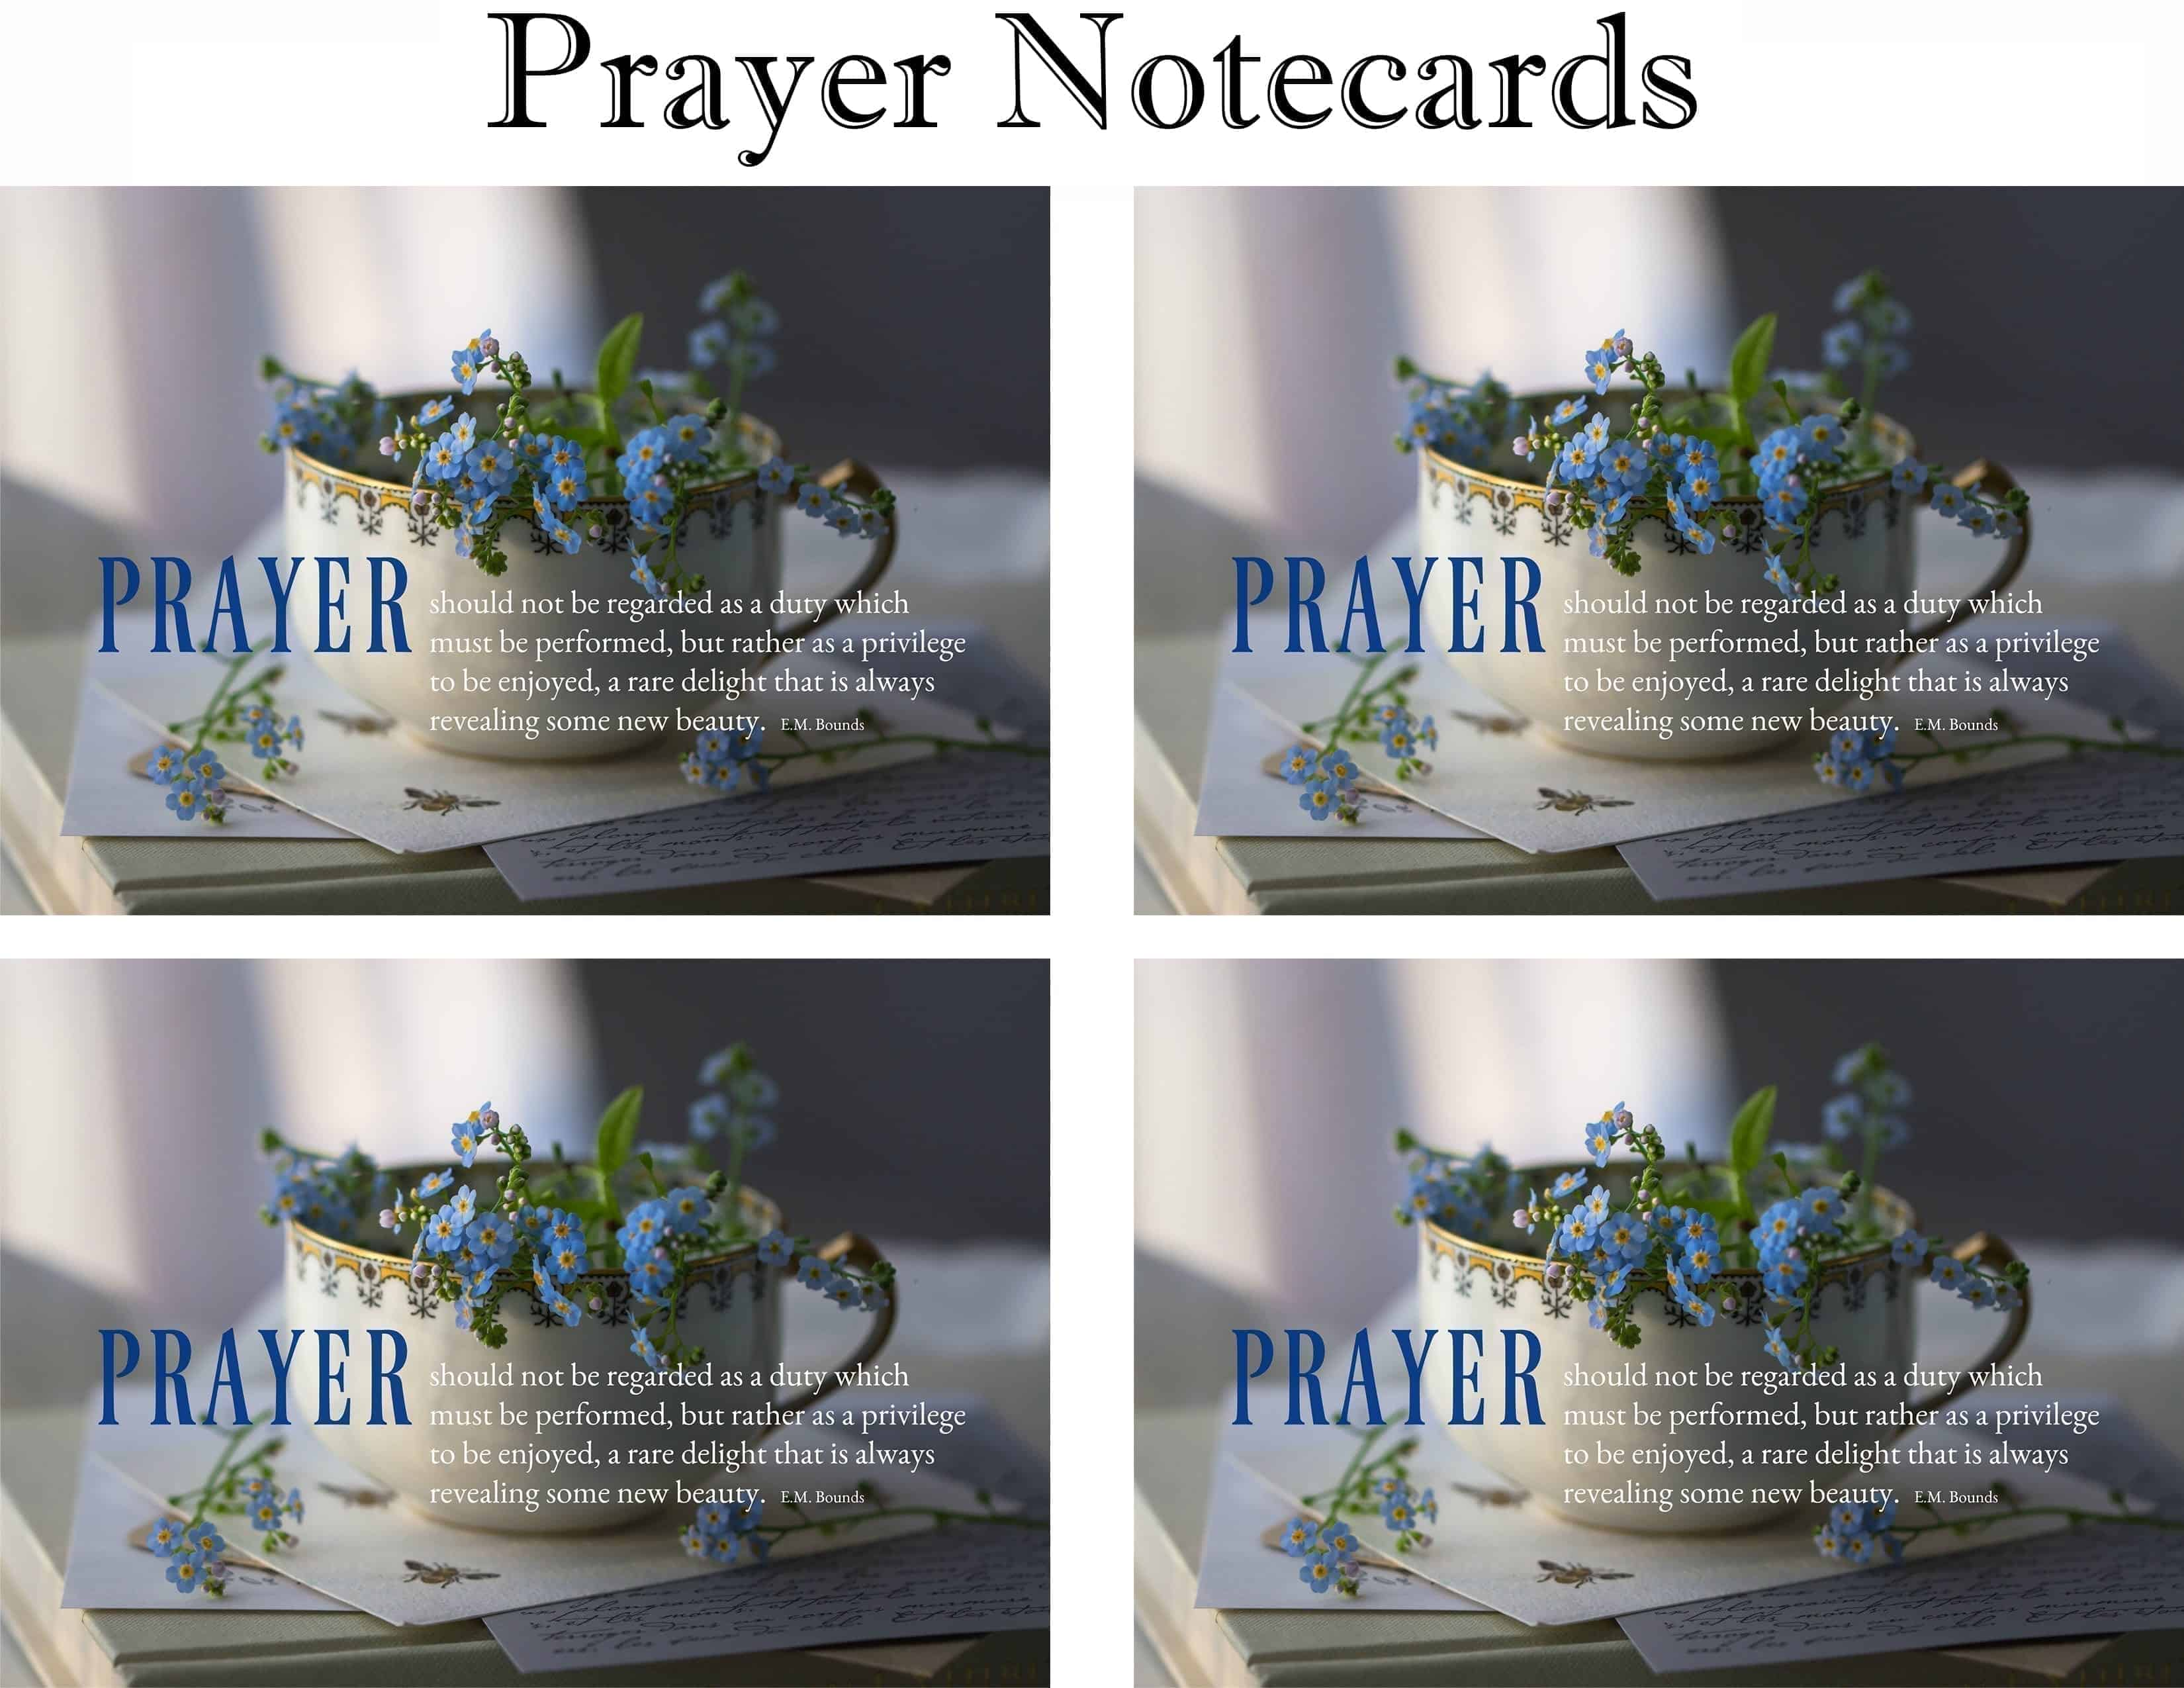 Prayer Notecards